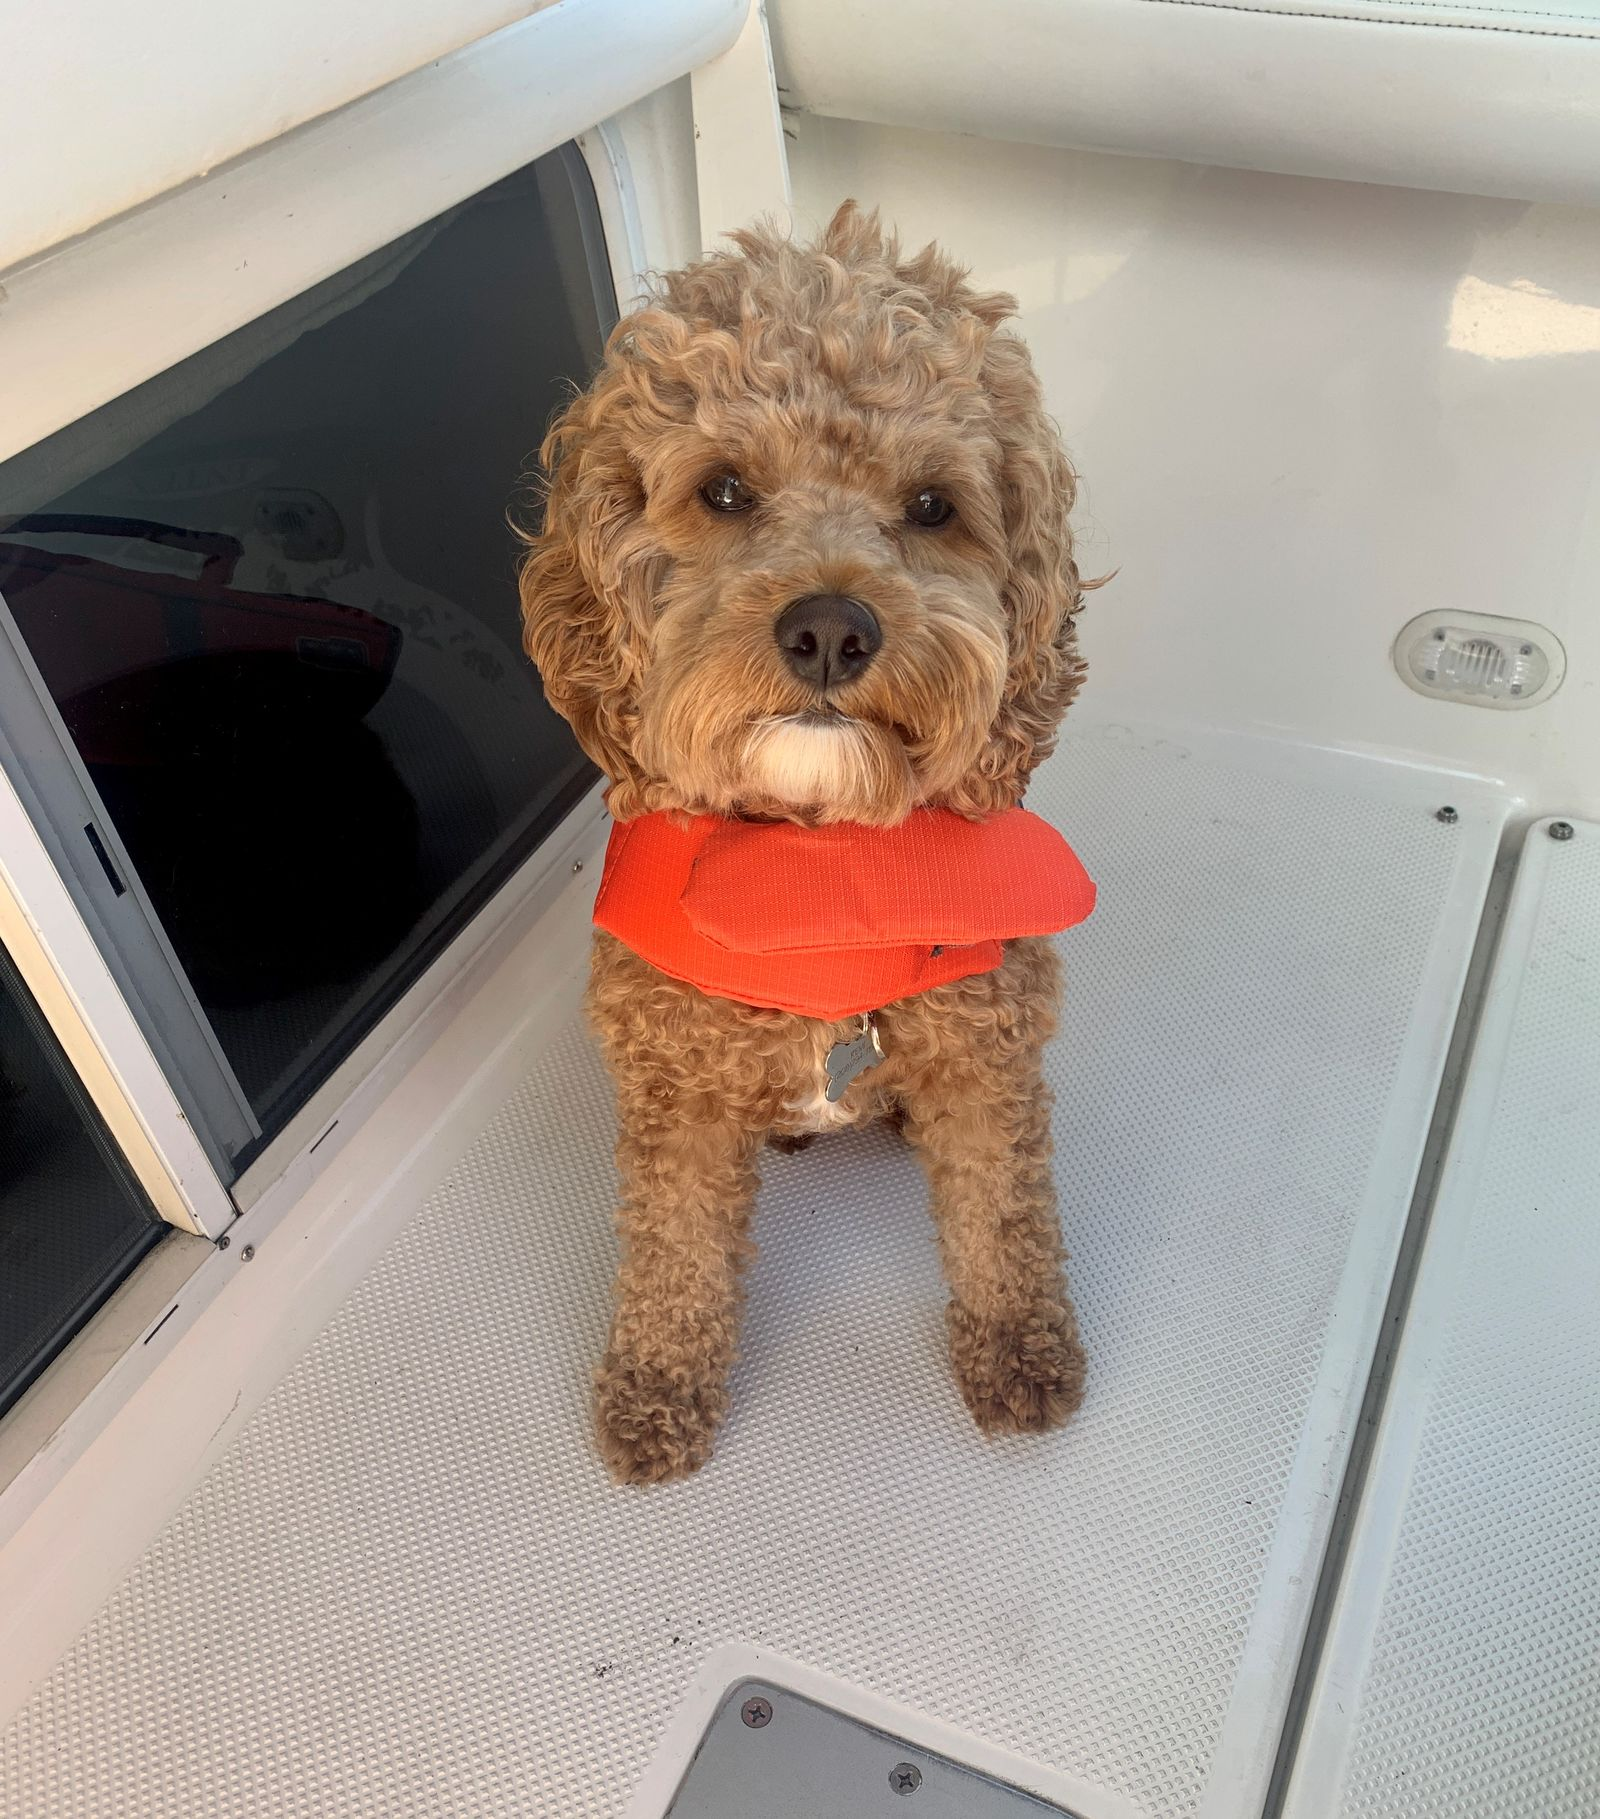 You may have seen Reporter Hannah Knowles' dog Remi on TV before. She celebrates the golden doodle on National Dog Day. (WWMT)